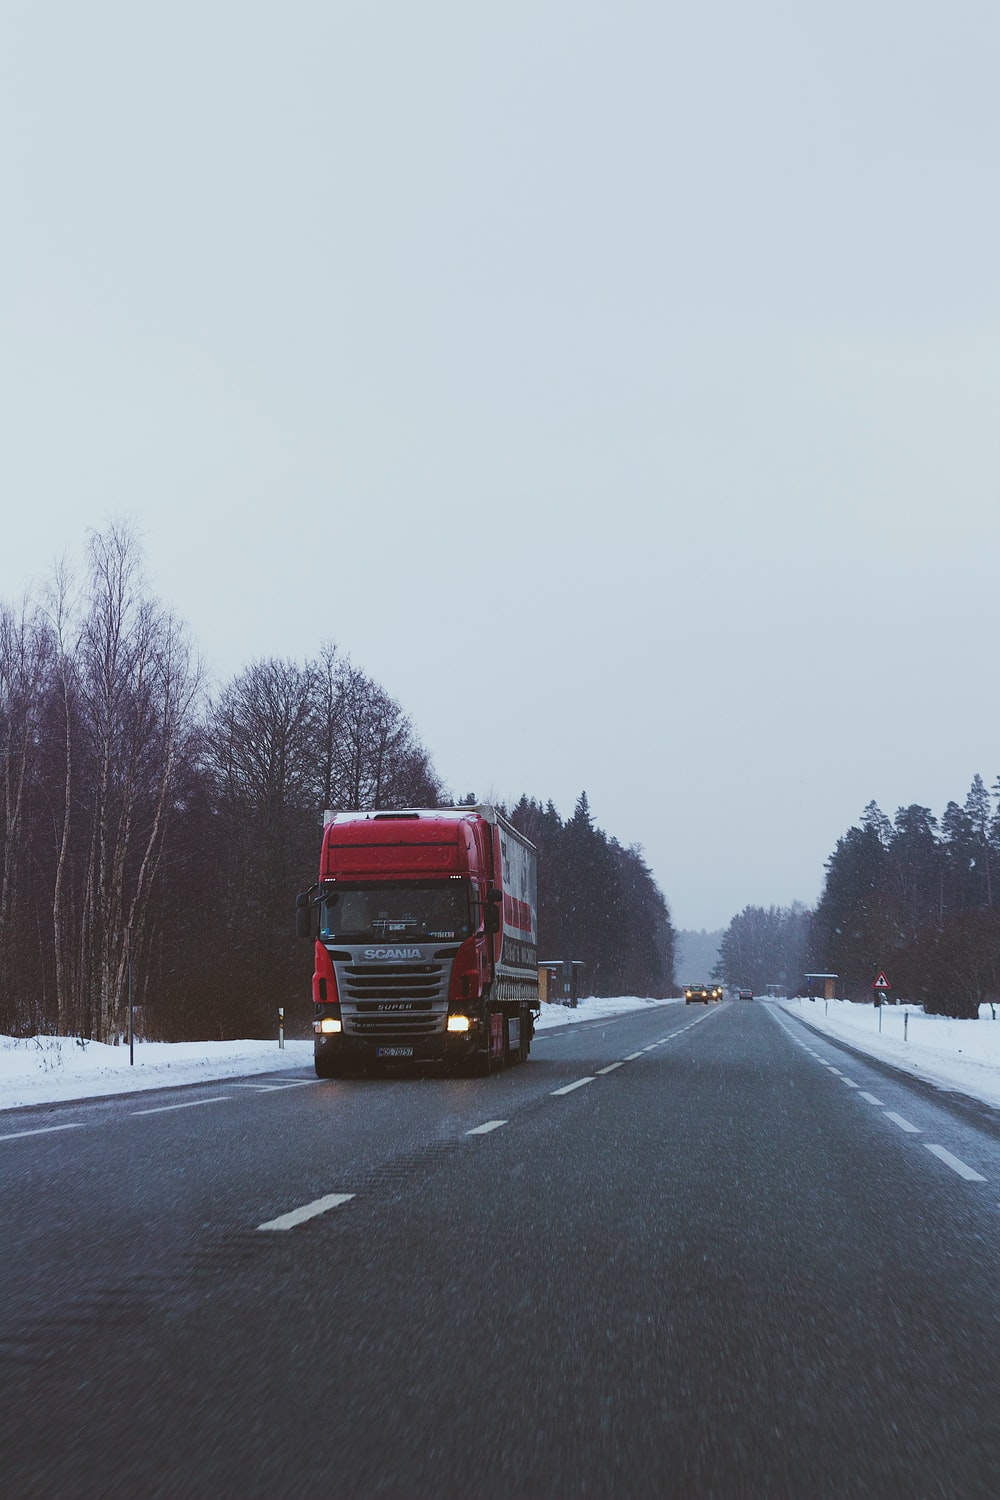 red truck on road during daytime